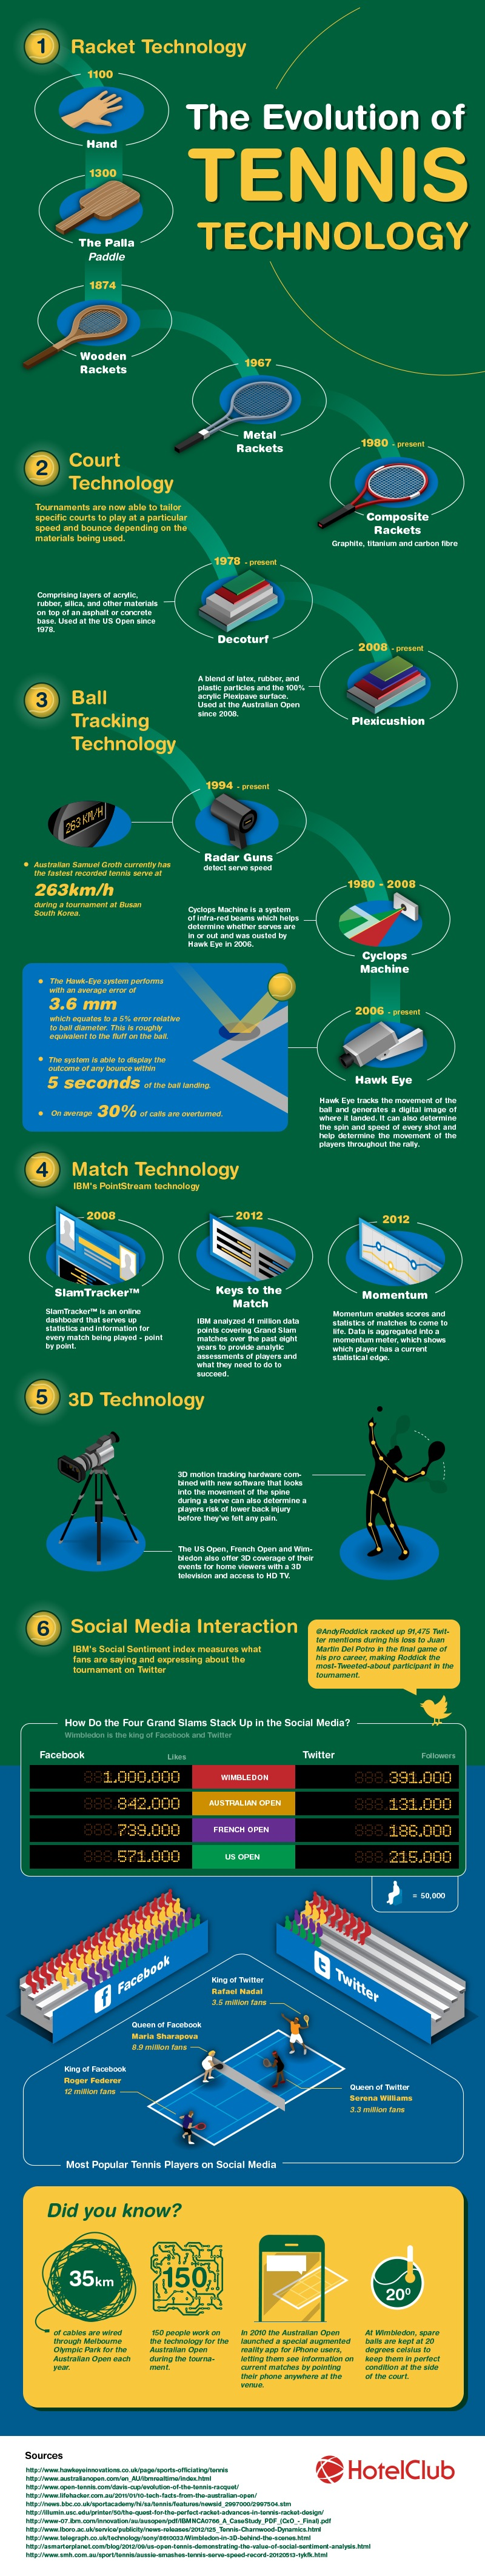 Tennis Technology Advances-Infographic